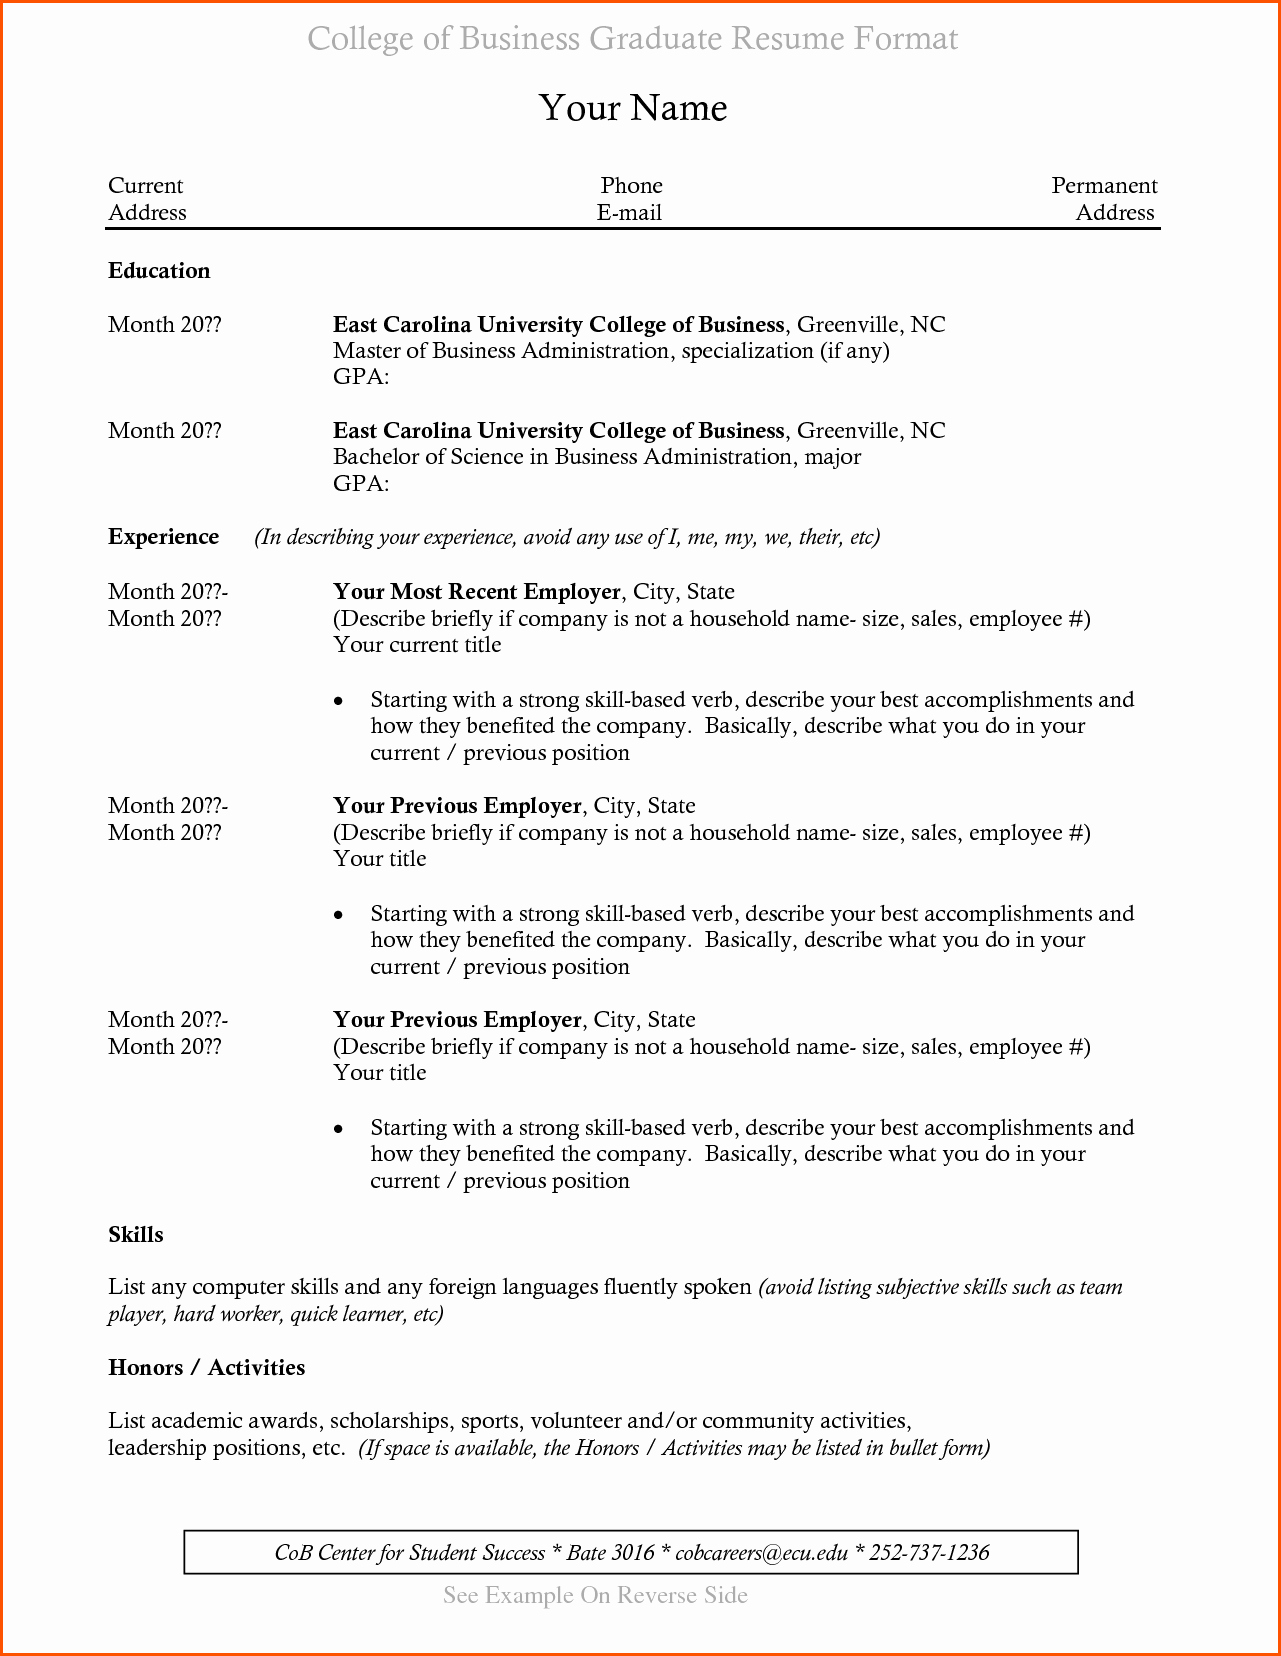 Resumes for Recent College Grads Beautiful College Graduate Resume Samples Ideasplataforma